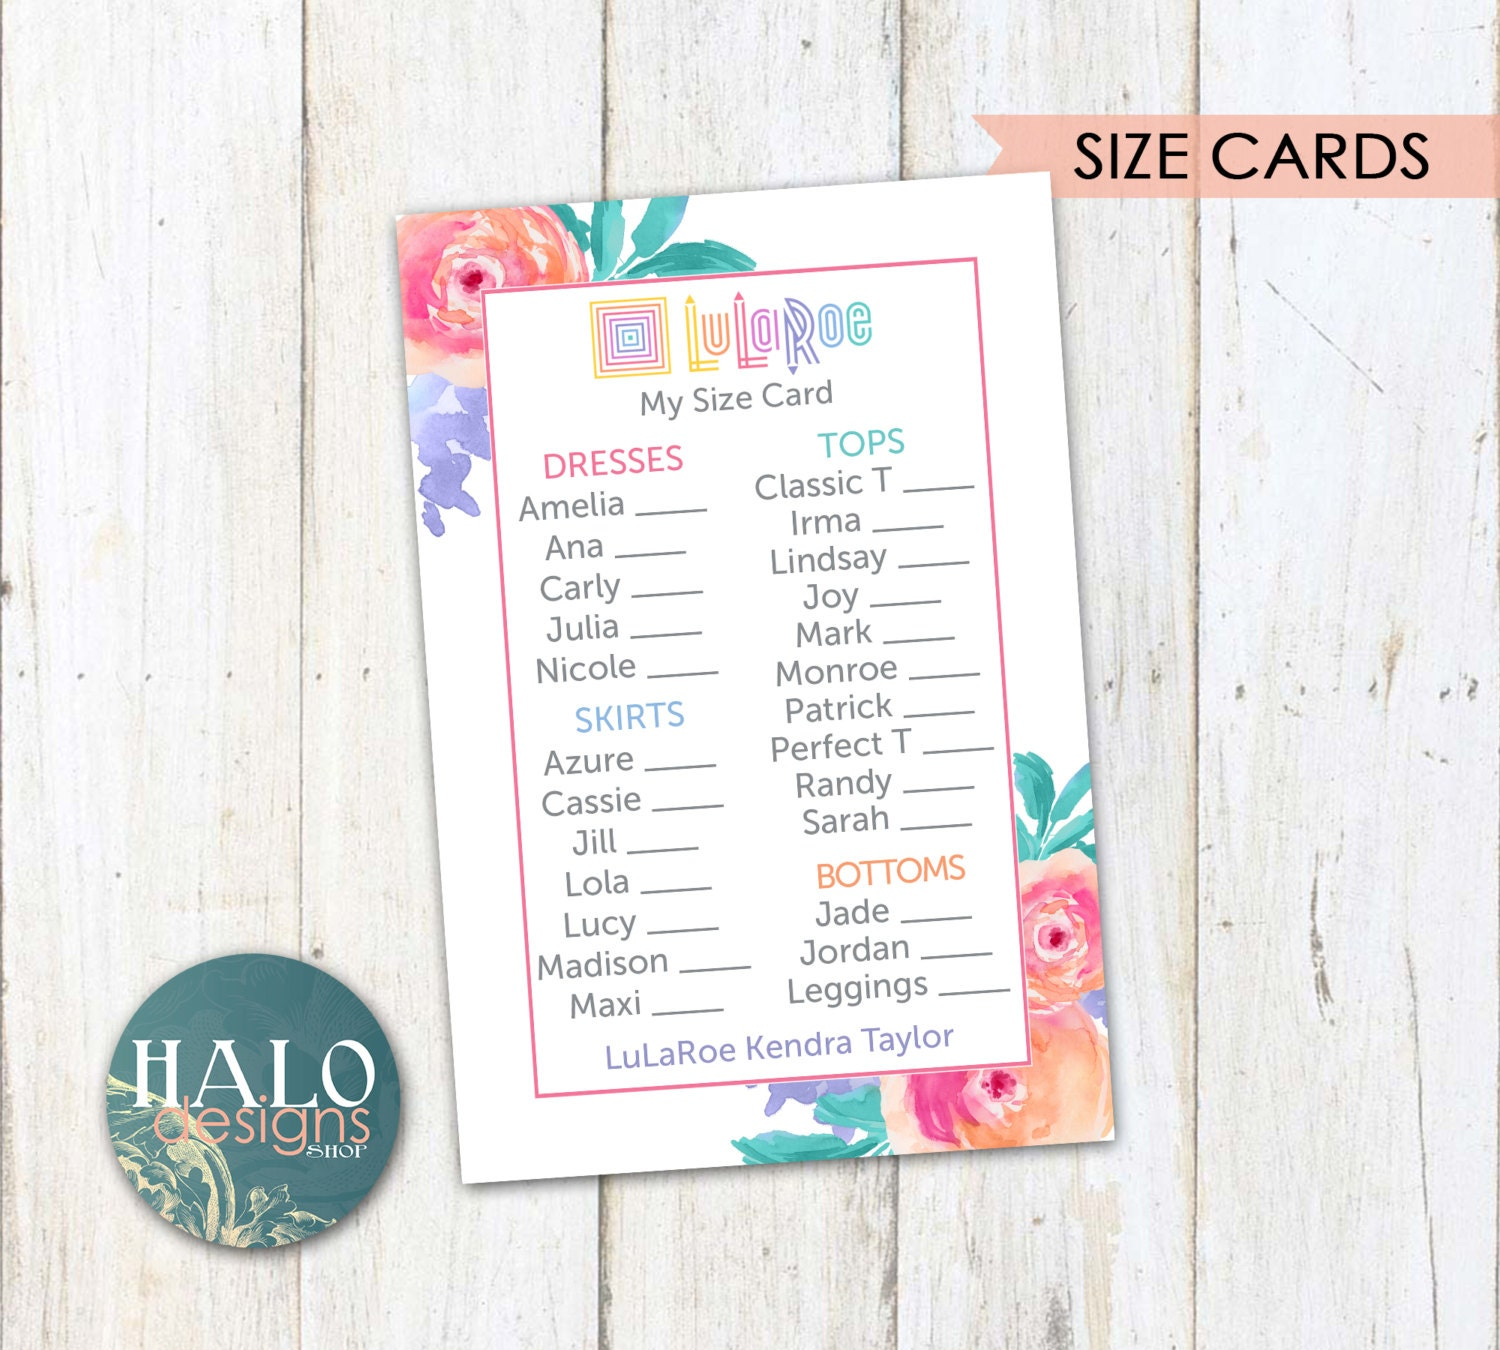 lularoe size cards pink flowers business cards by